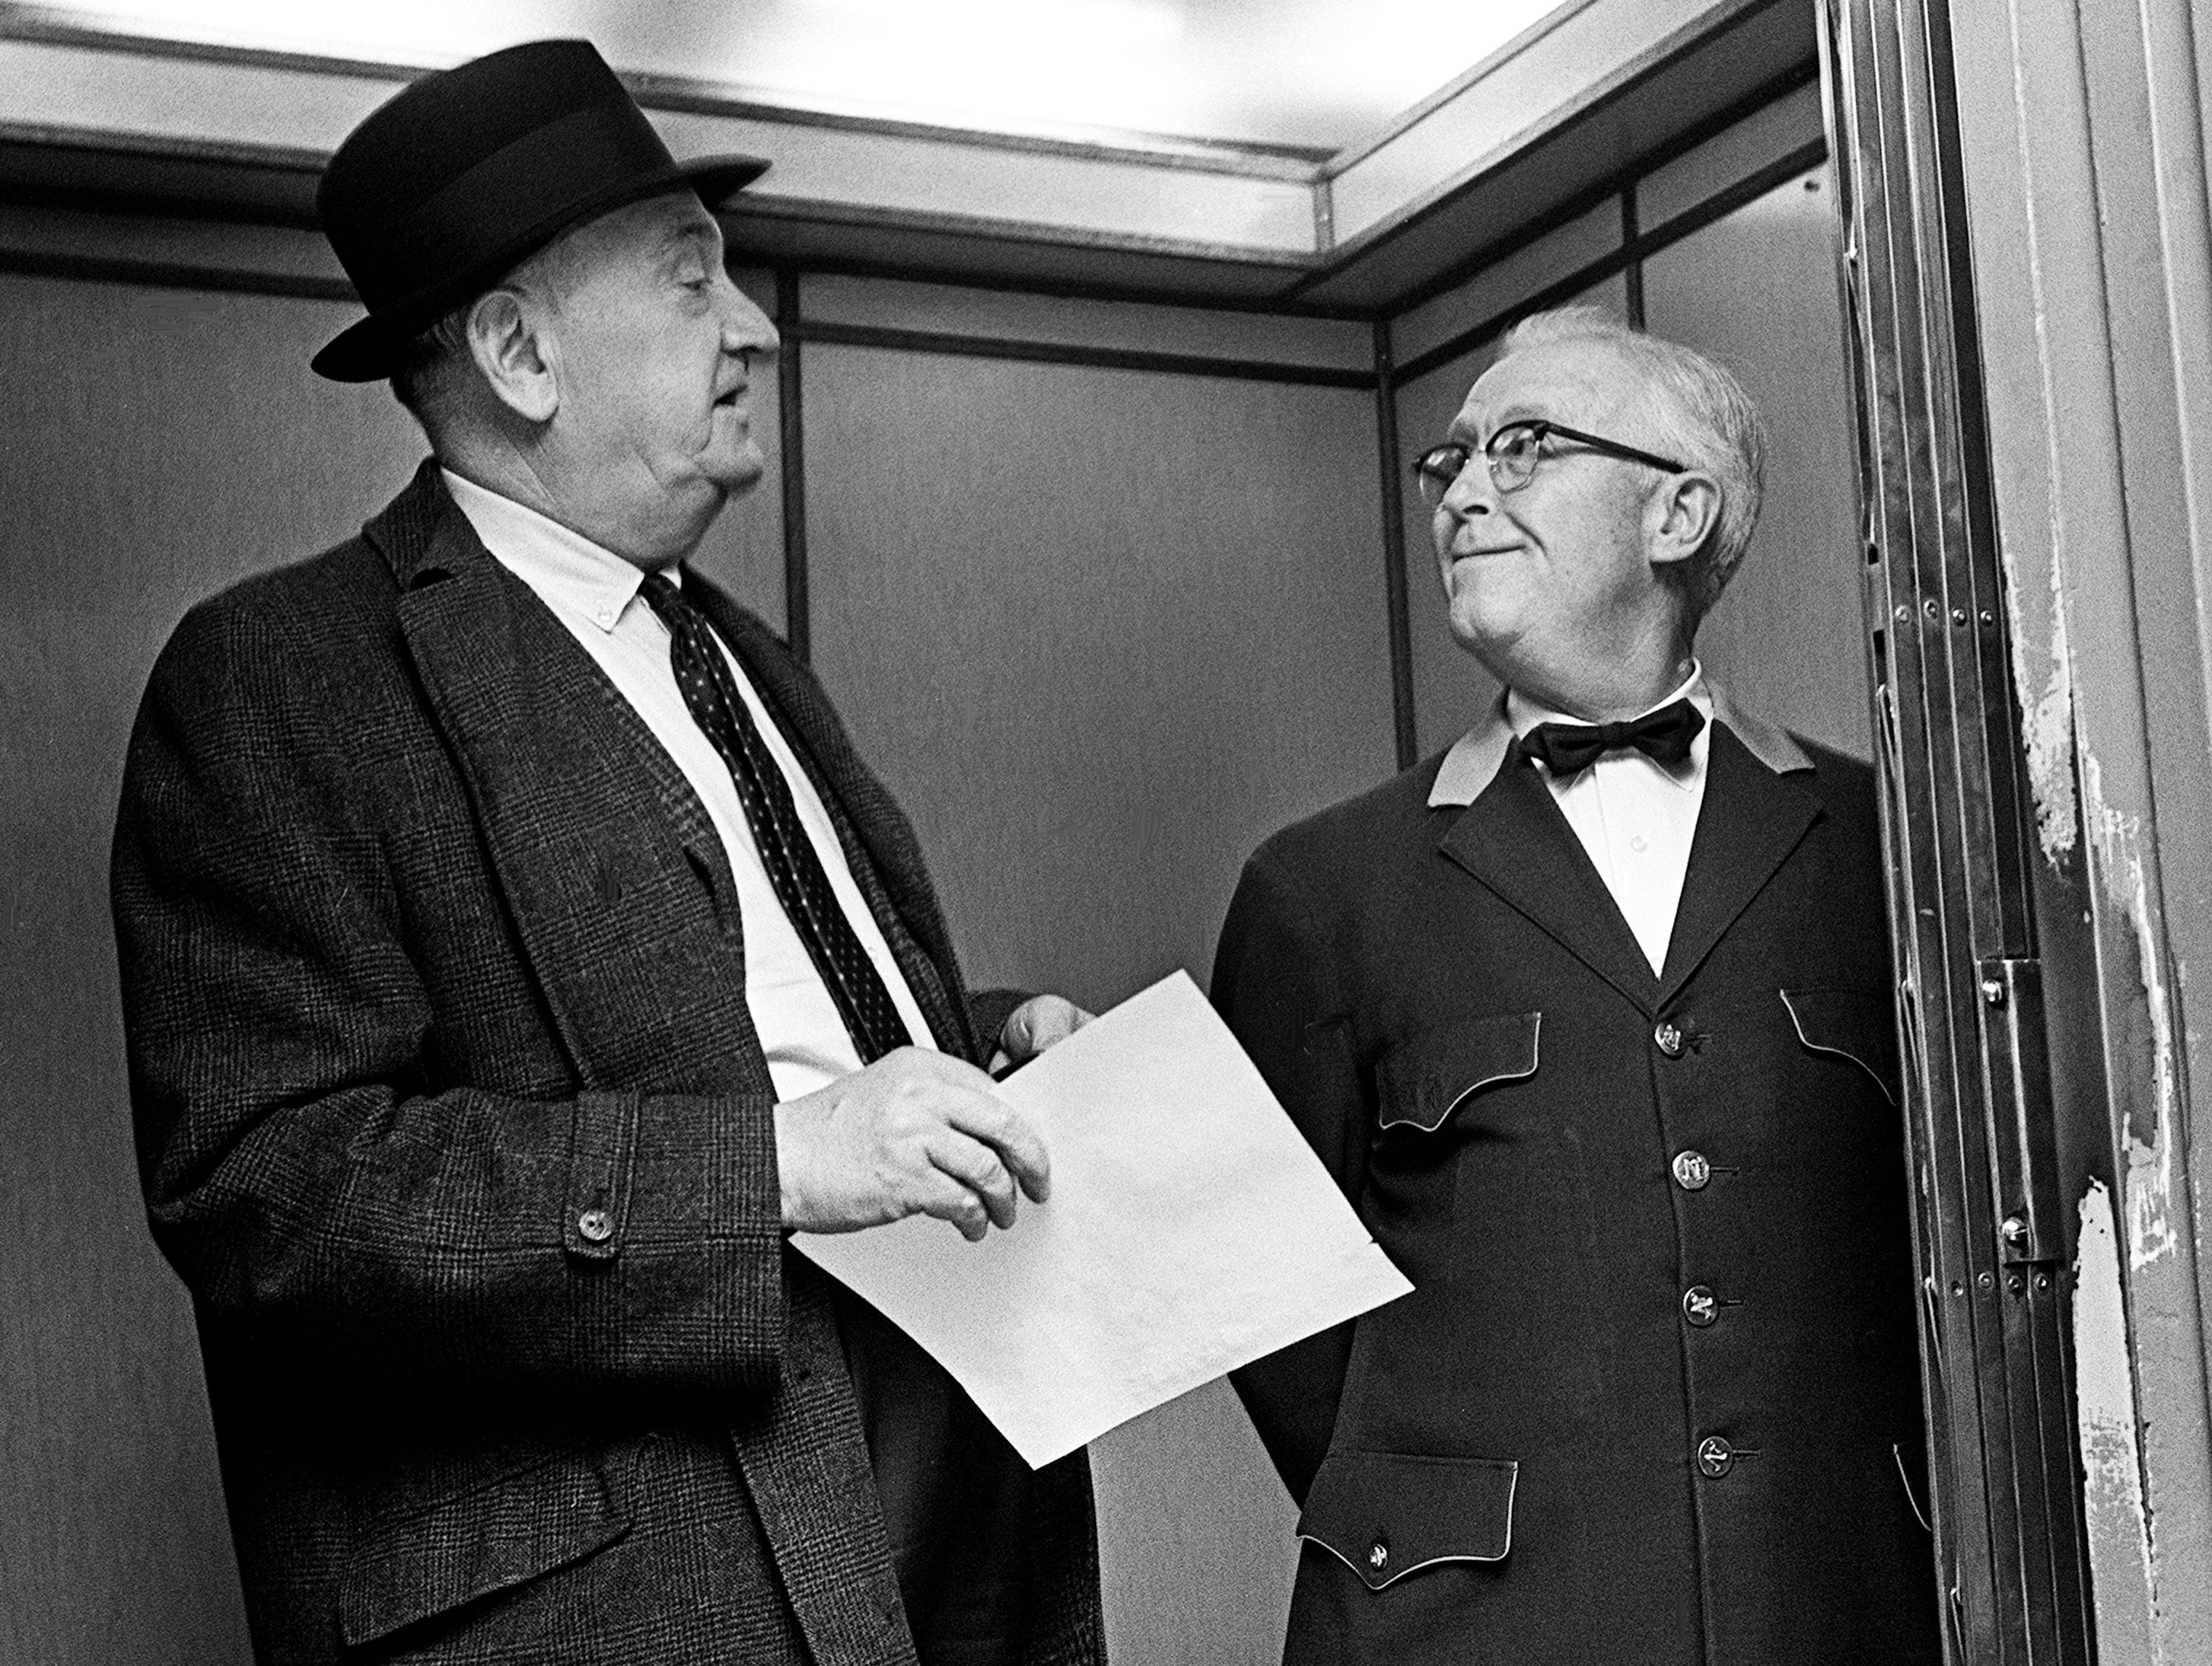 Kentucky head coach Adolph Rupp, left, found an old friend waiting as he got to the elevator to go to his room at the Noel Hotel in Nashville Feb. 1, 1966. Ernest Mathis, right, has been hauling the veteran Wildcat mentor for years.